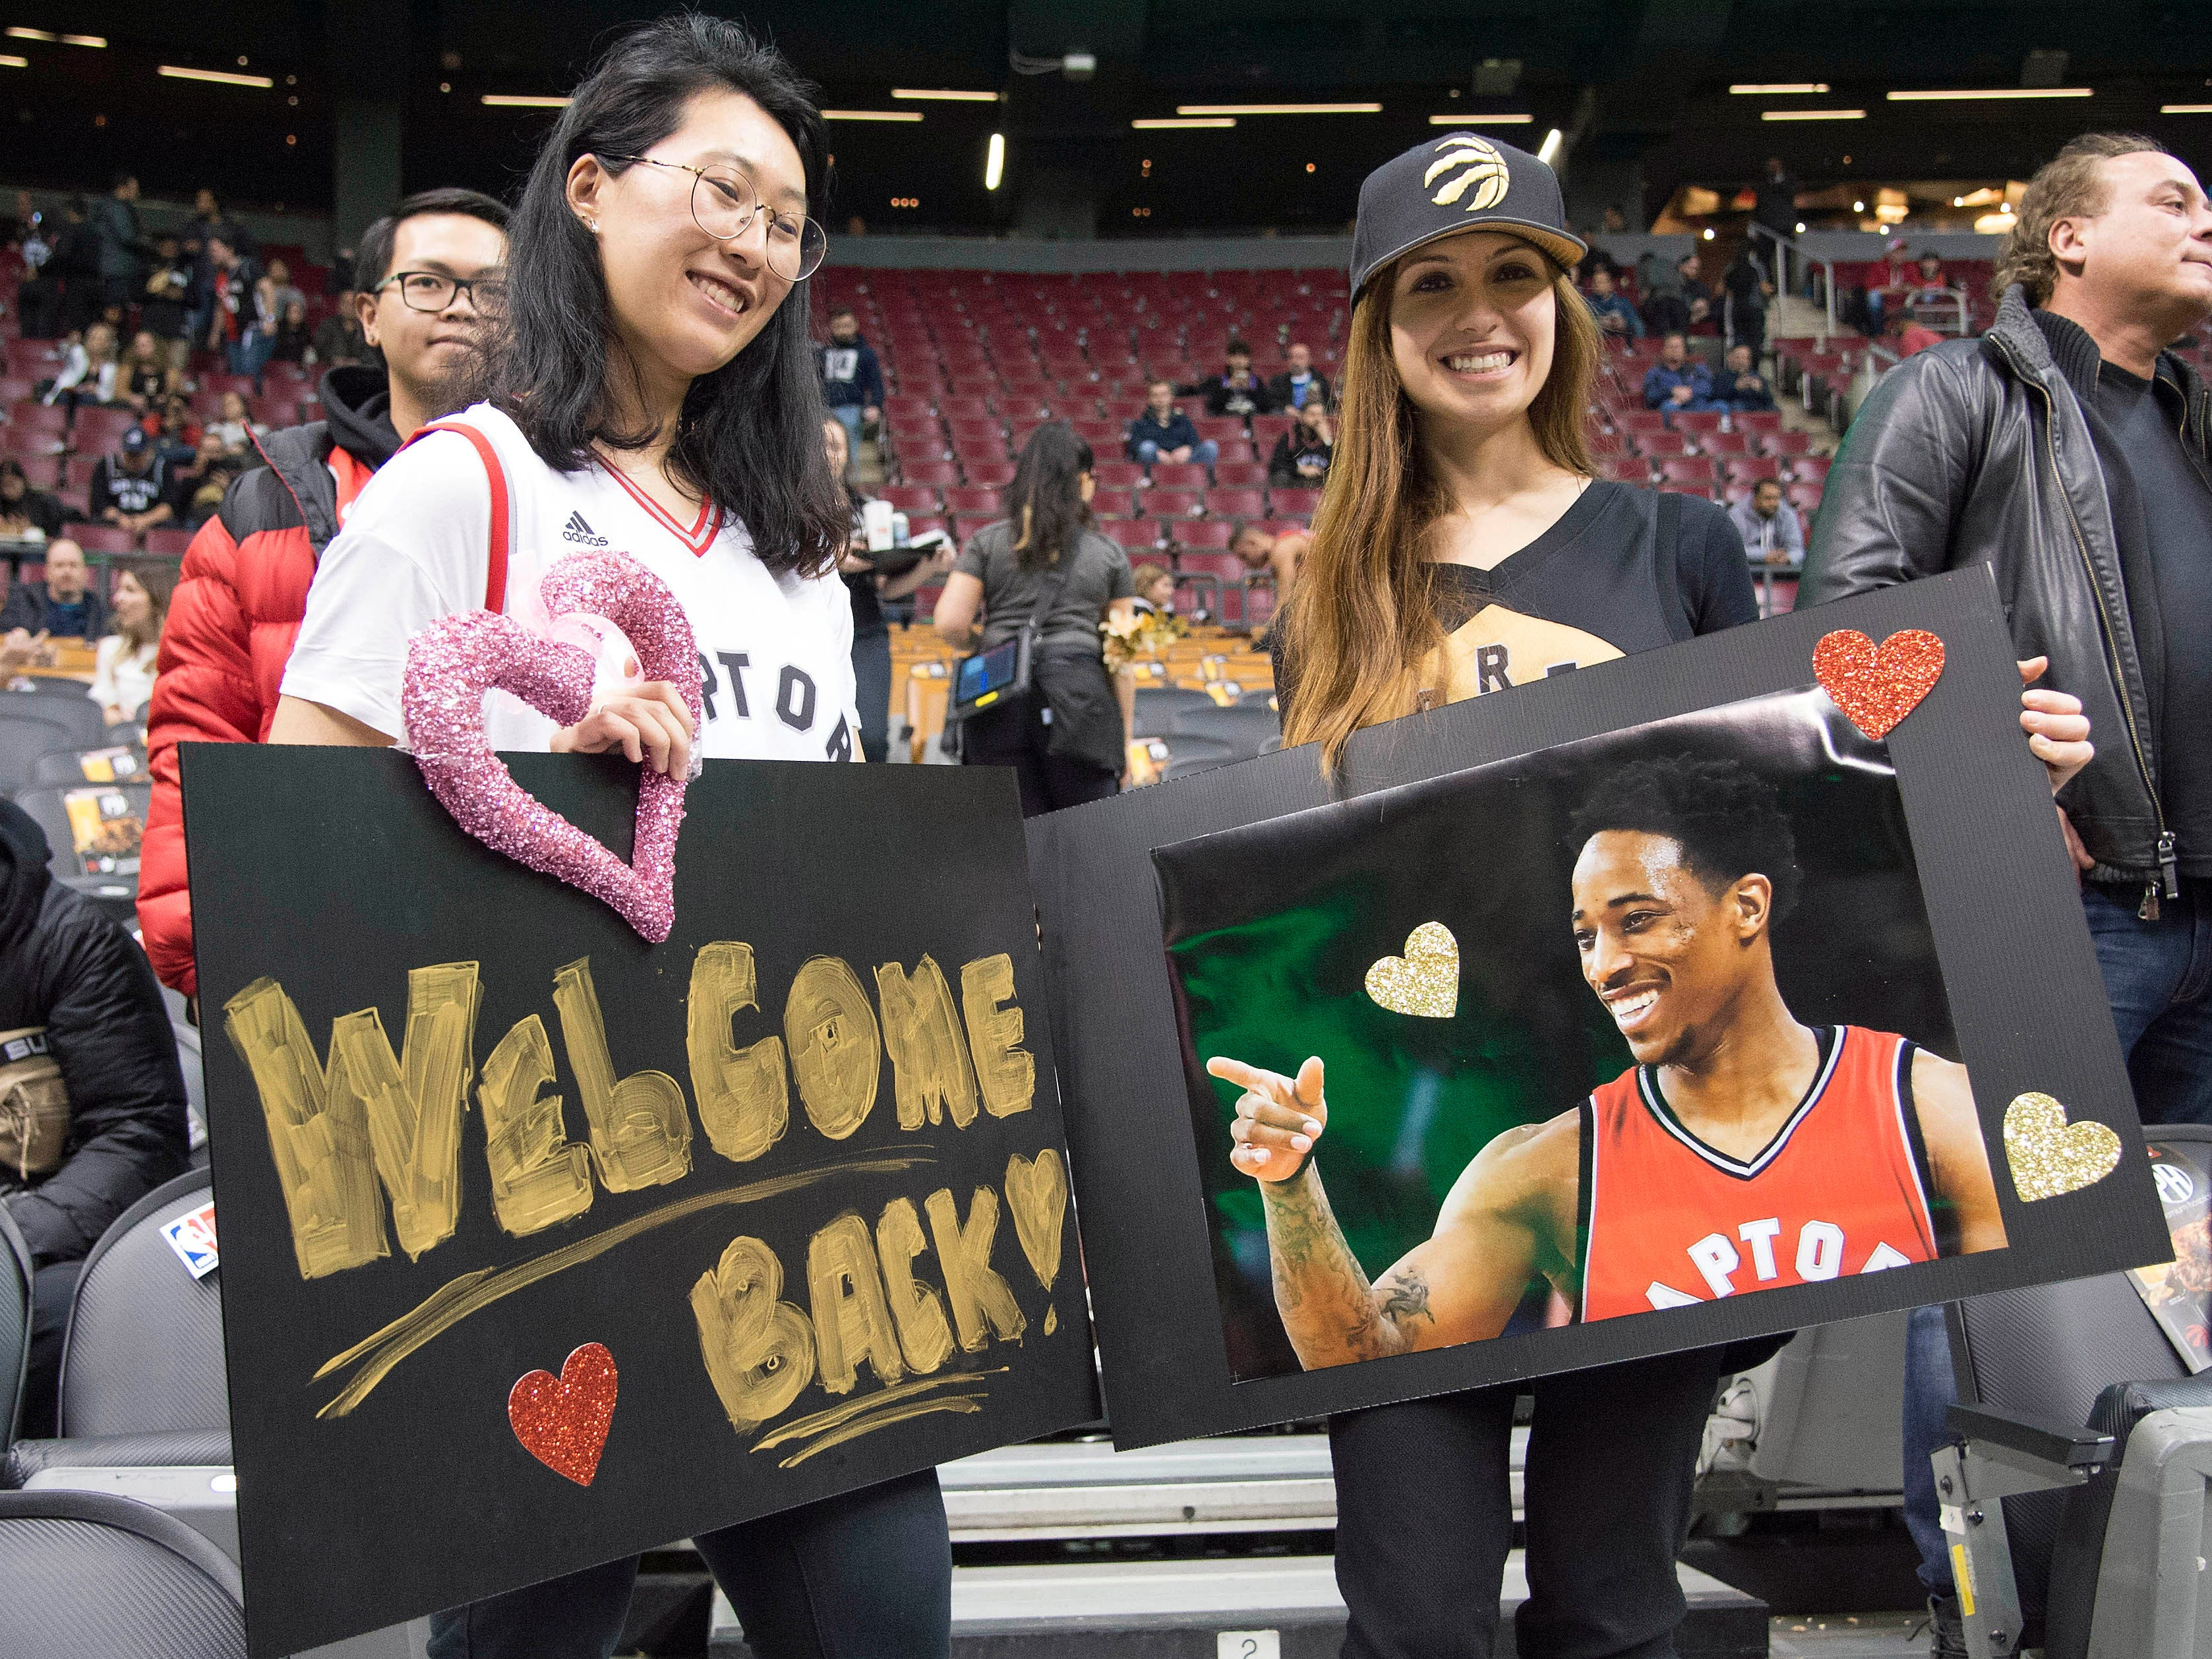 Feb. 22: Raptors fans welcome DeMar DeRozan back to Toronto for the first time since he was traded to the Spurs.